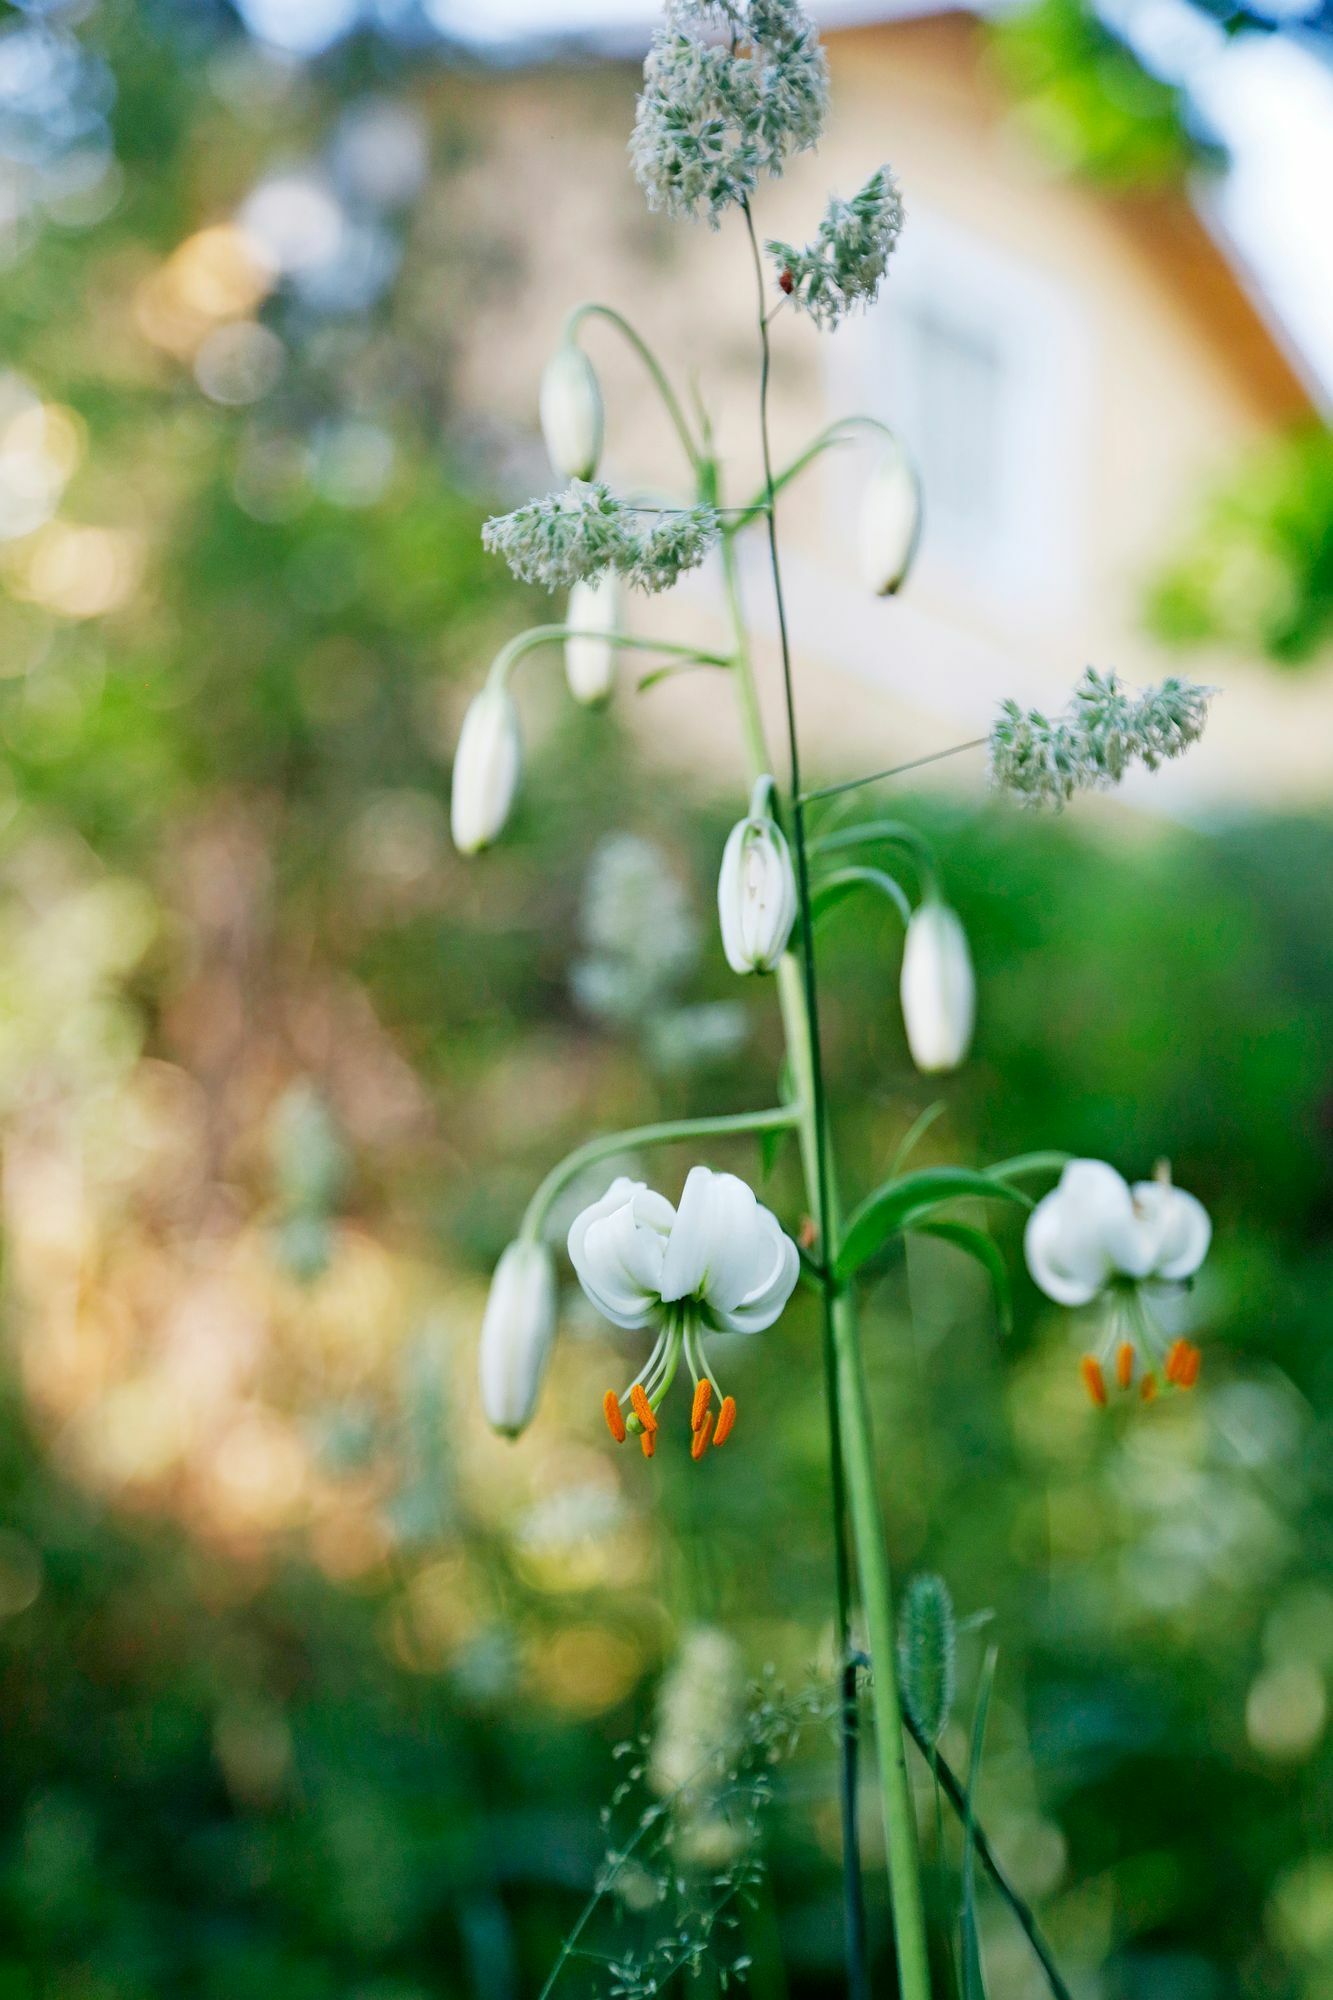 Shade lilies spread by themselves, and tall flower stalks rise from here to here in the garden.